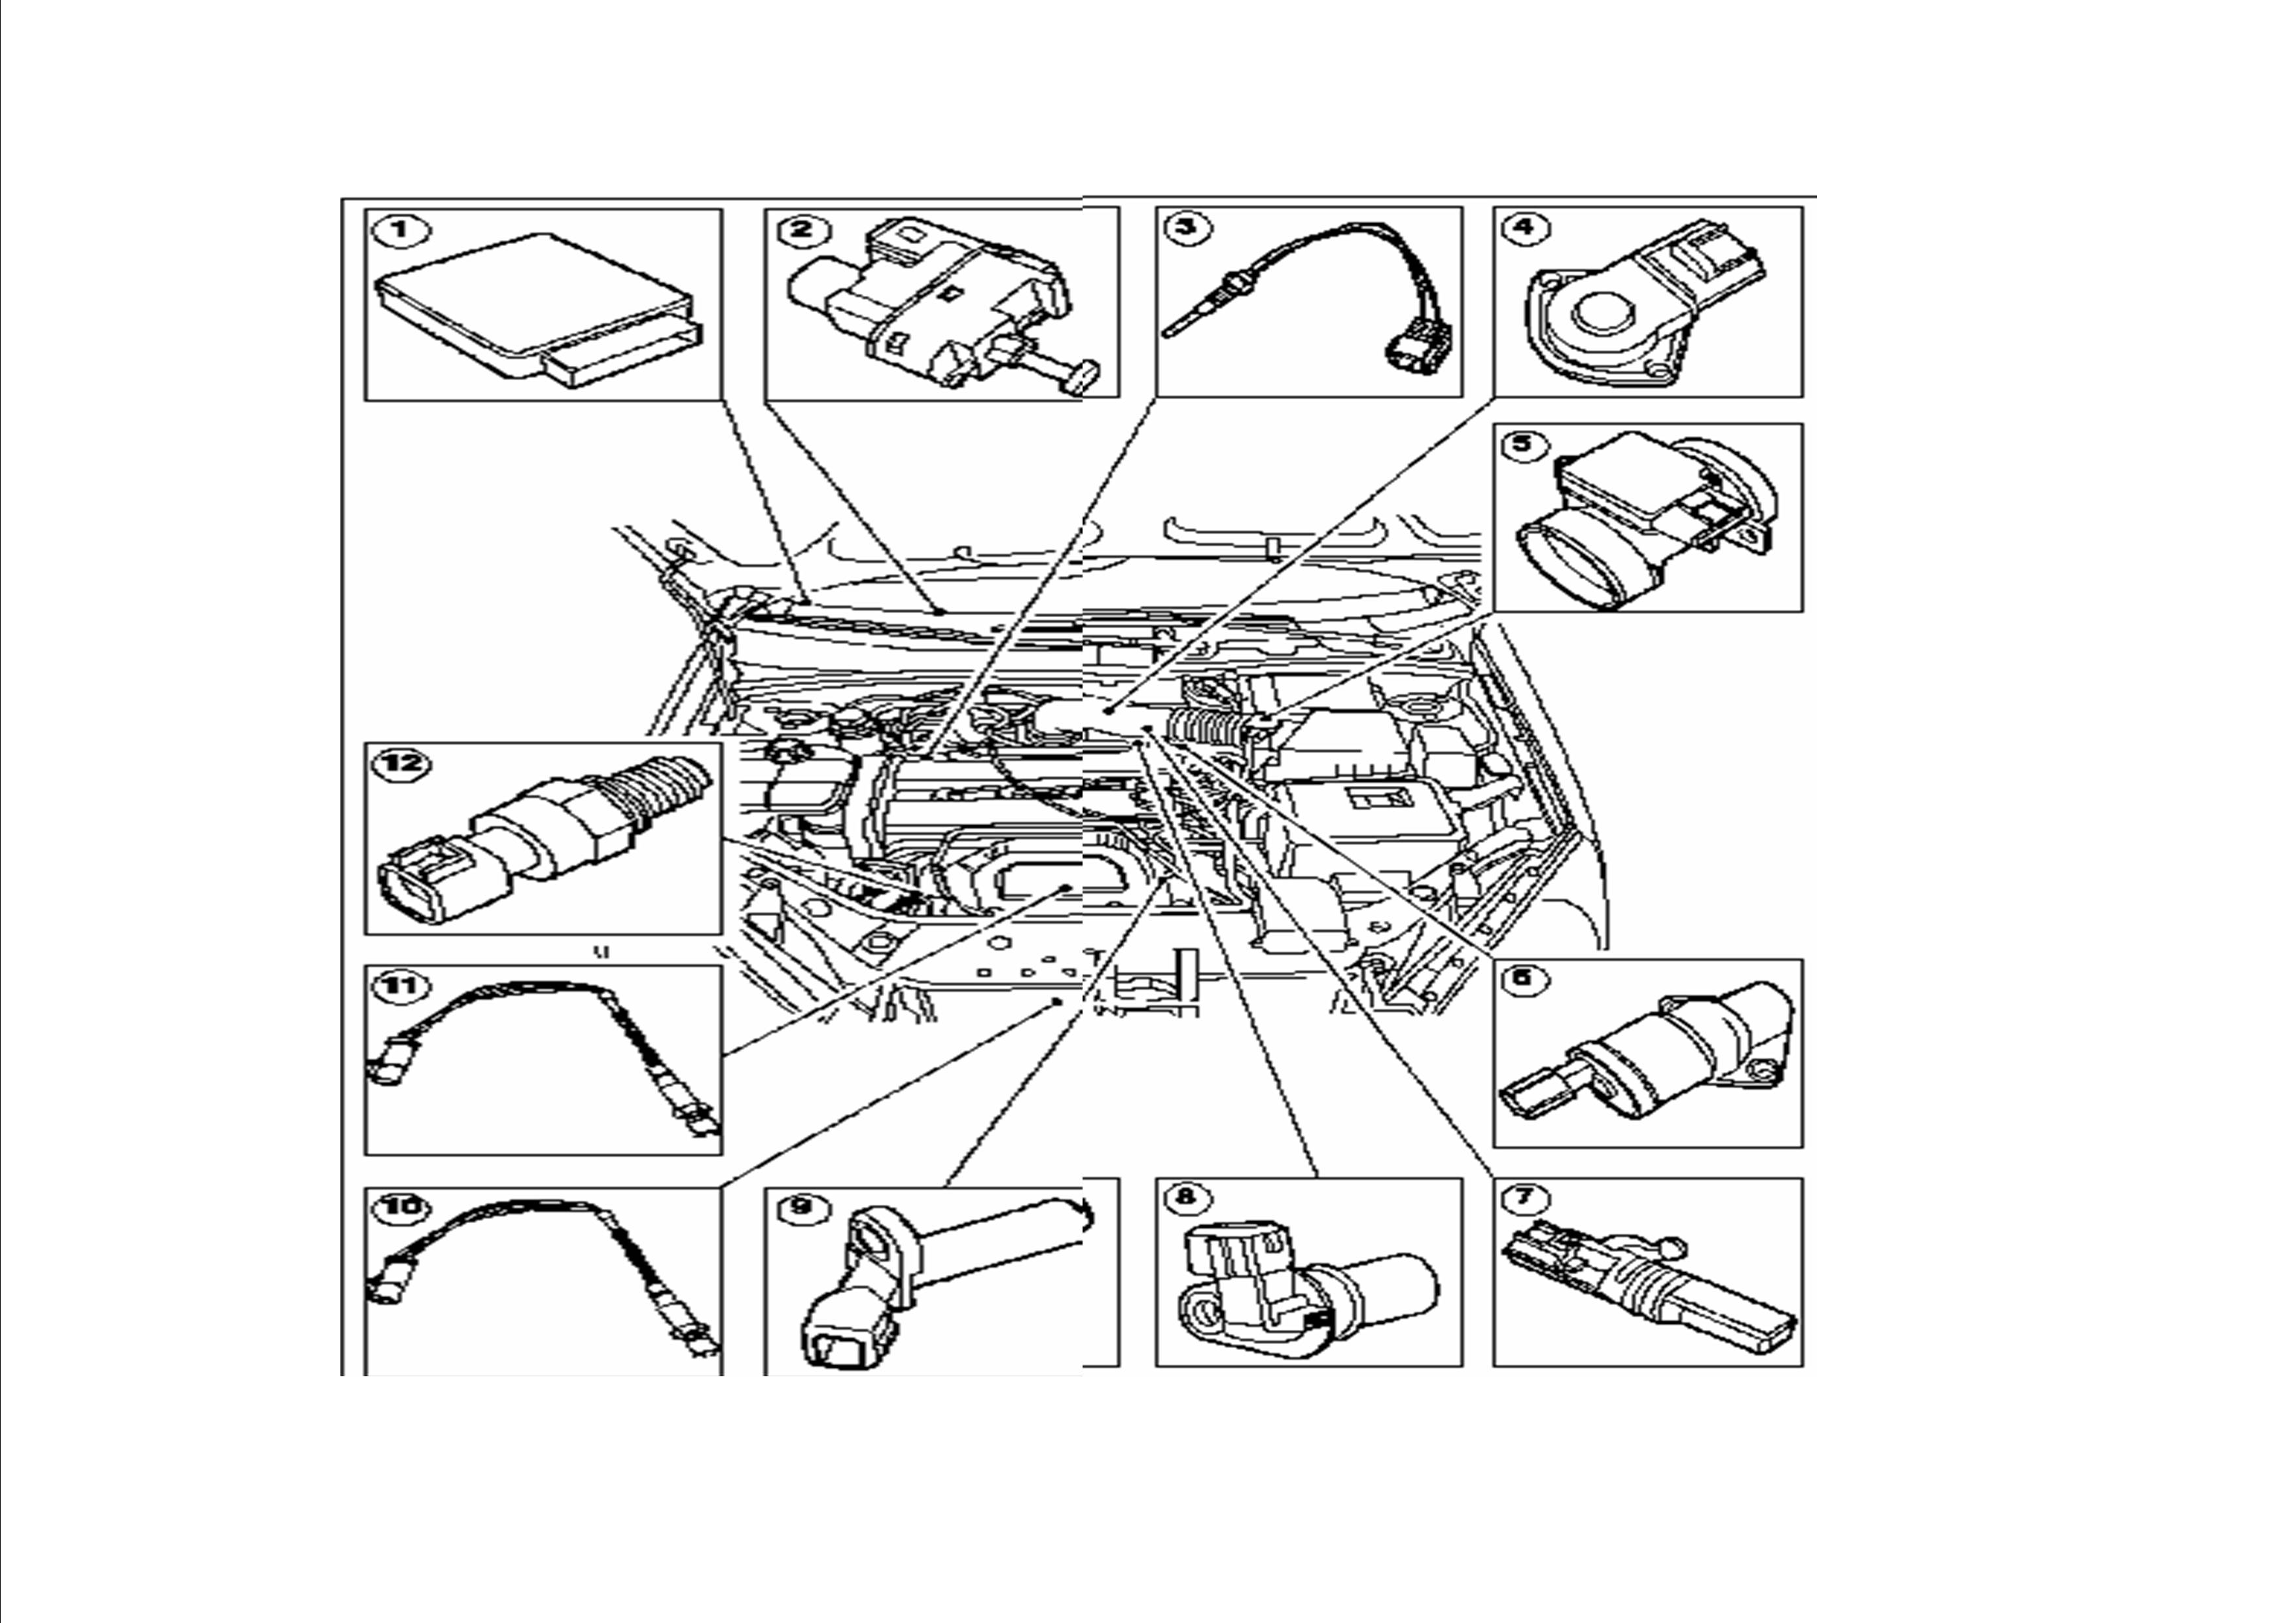 2002 Ford Focus Engine Diagram http://trishchandler.fastpage.name/fordfocusenginediagram/